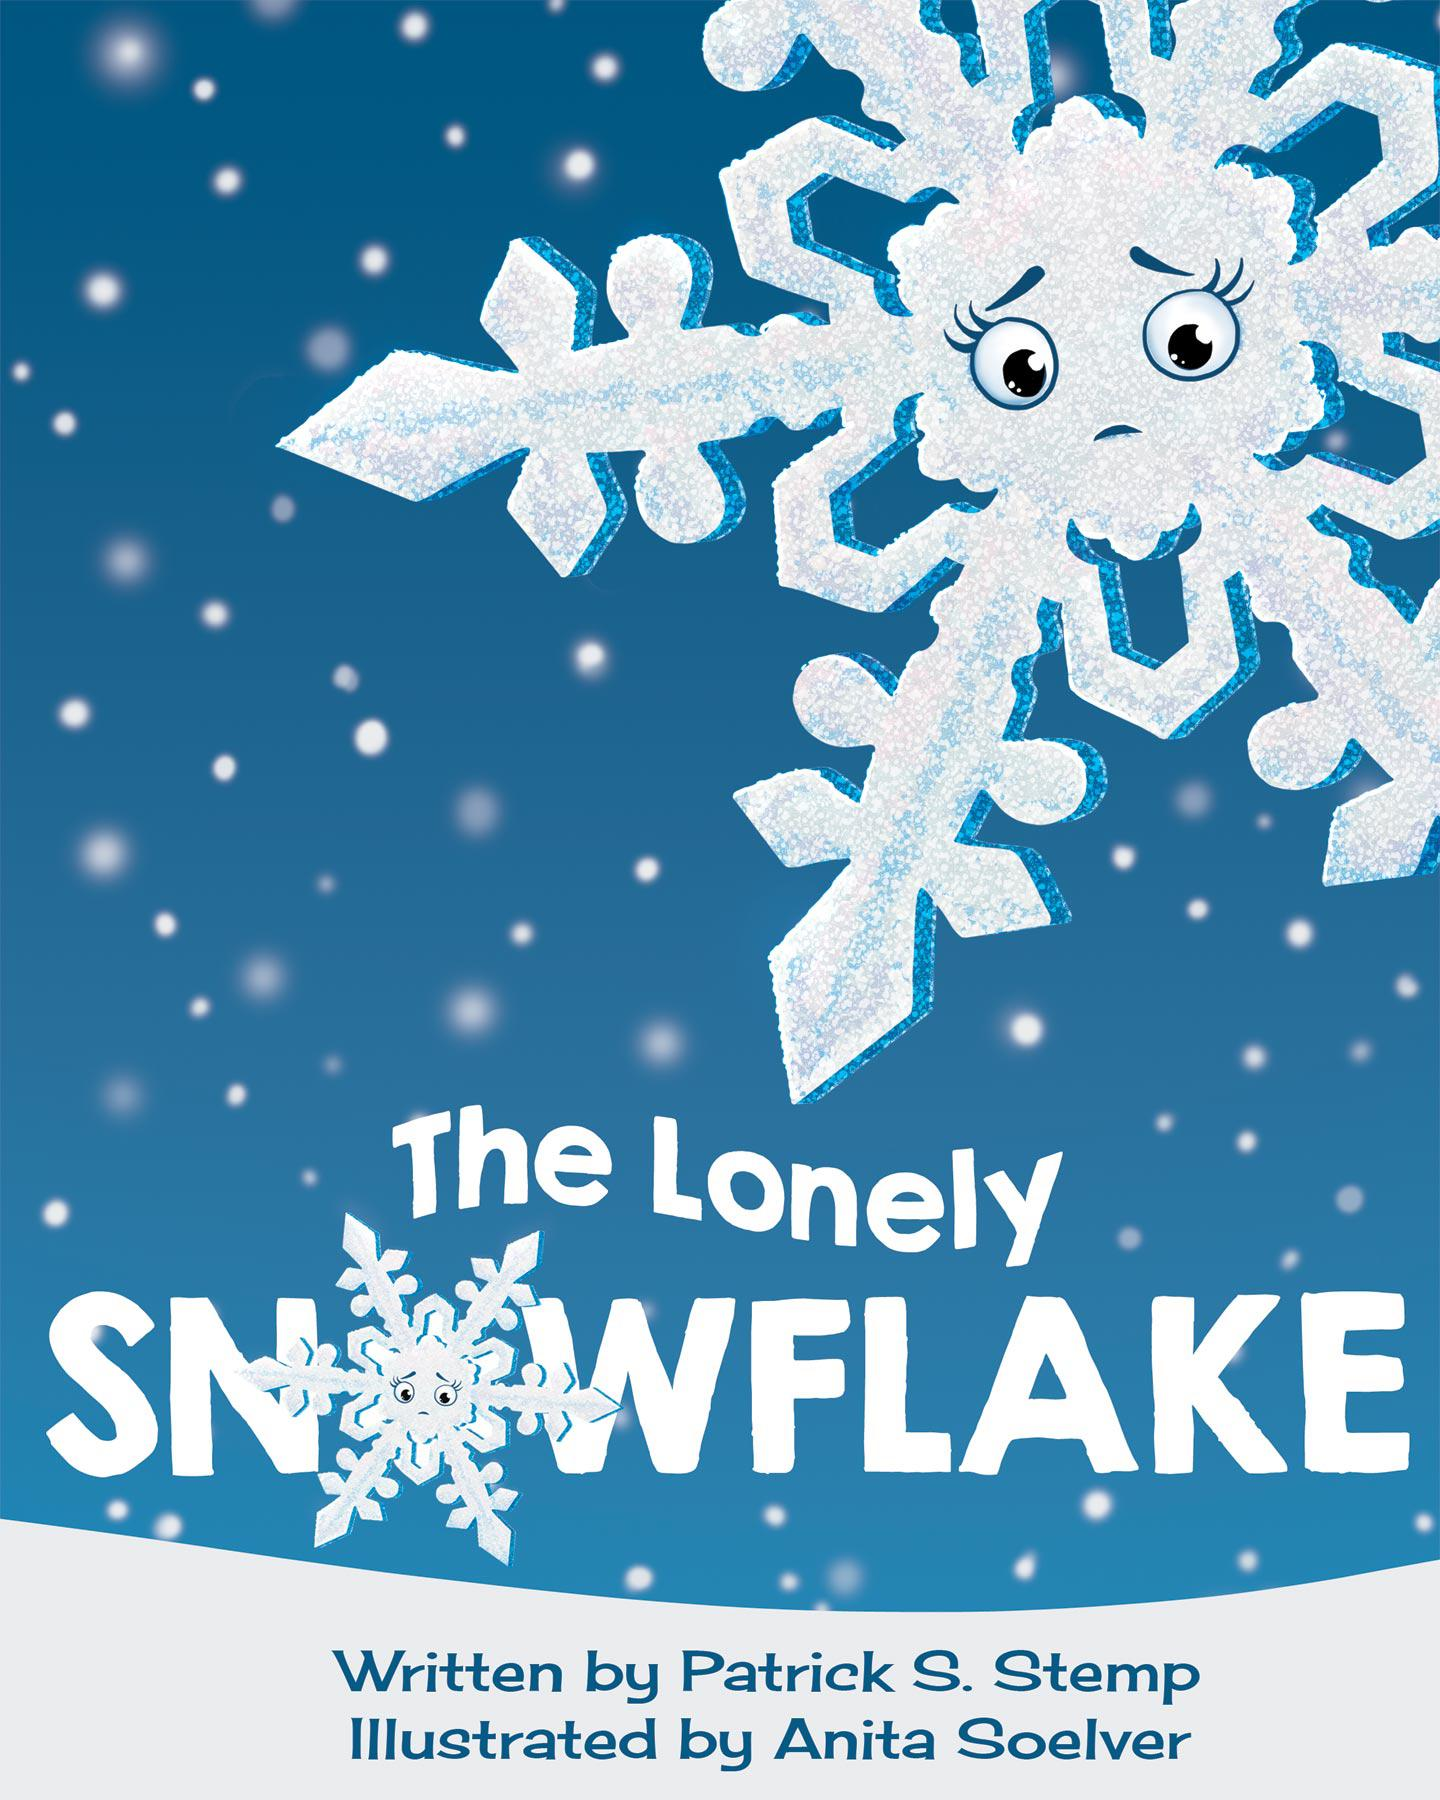 The Lonely Snowflake - a children's book by Patrick Stemp & Anita Soelver